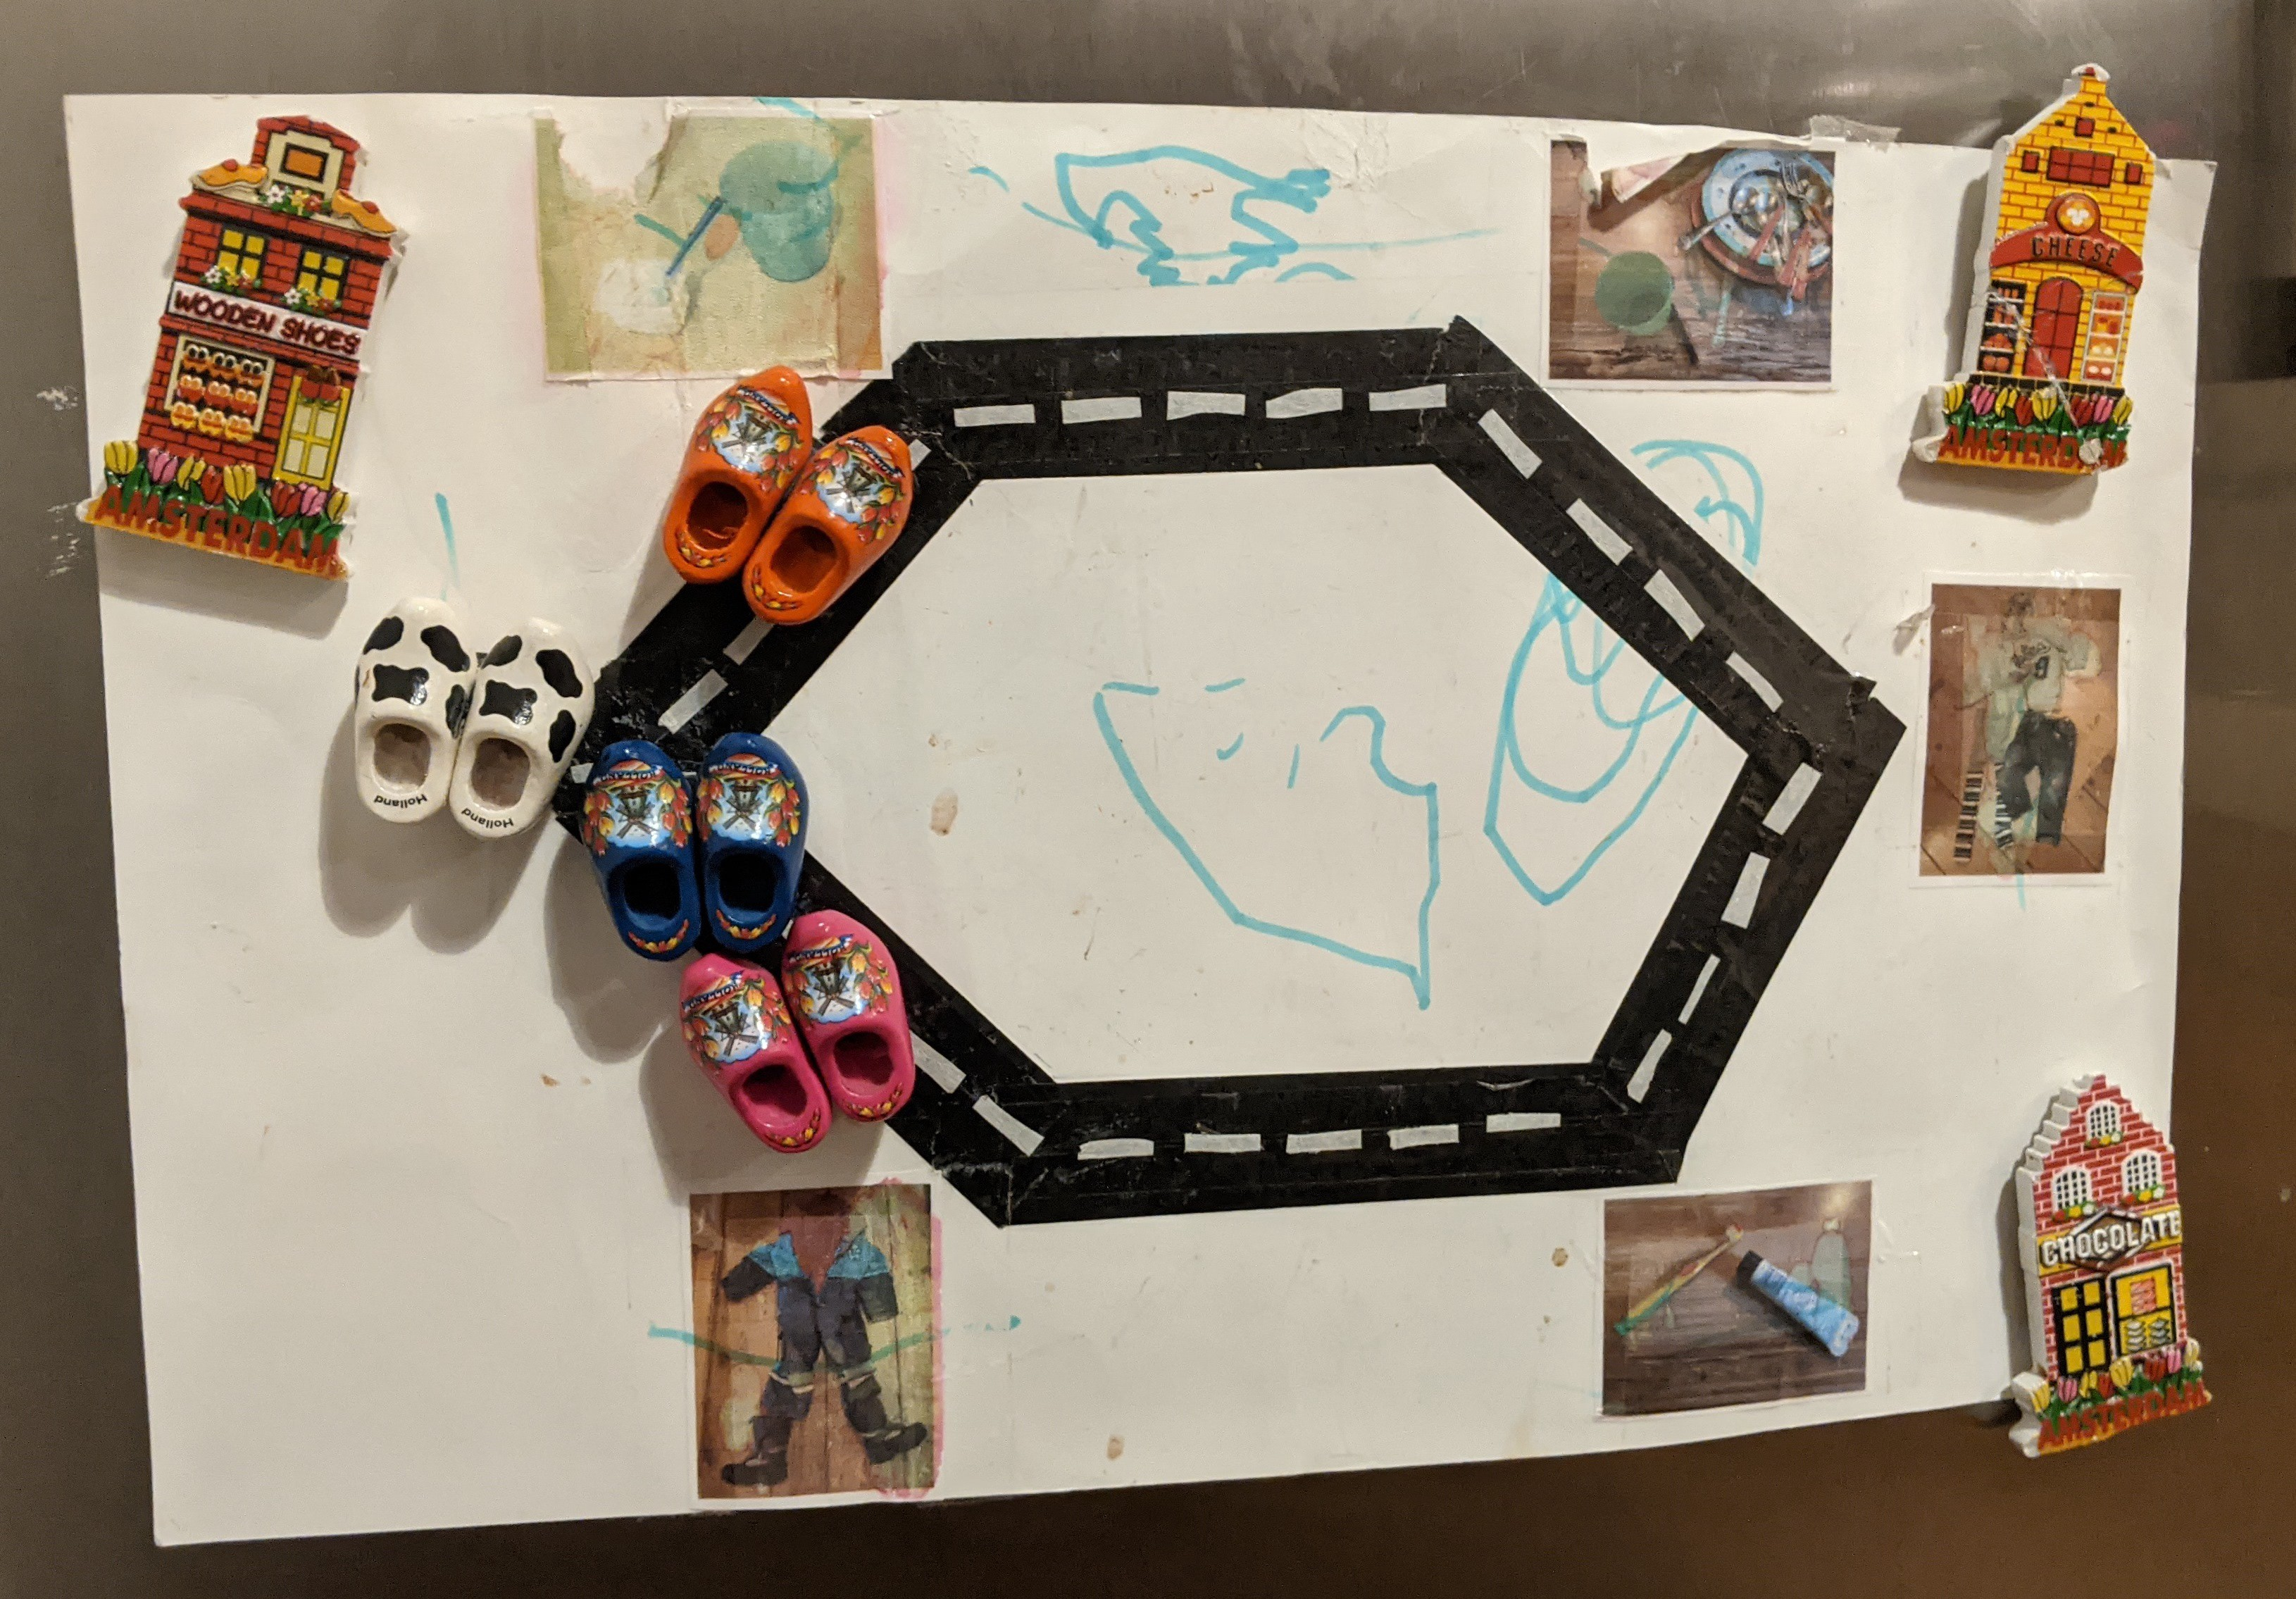 The morning race track, with stains and felt-pen scribbles, attached to a refrigerator with magnets.